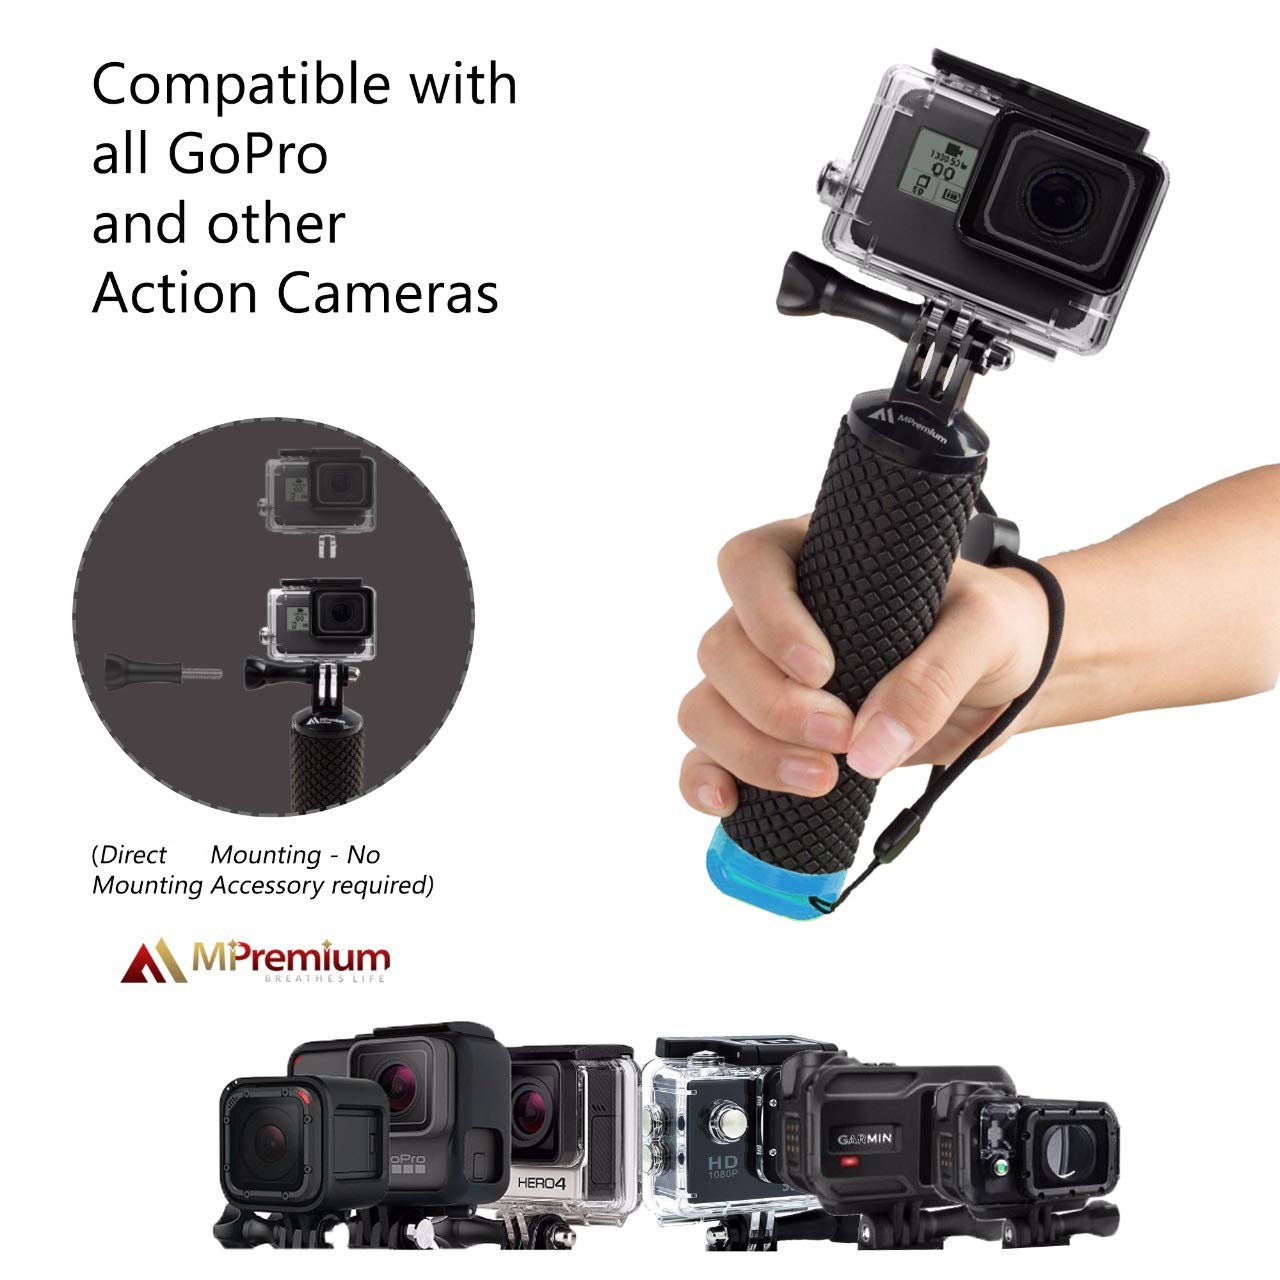 Waterproof Floating Hand Grip Compatible with GoPro Camera Hero 5 Session Black Silver Hero 6 5 4 3 2 1 Handler /& Handle Mount Accessories Kit for Water Sport and Action Cameras Rose Red